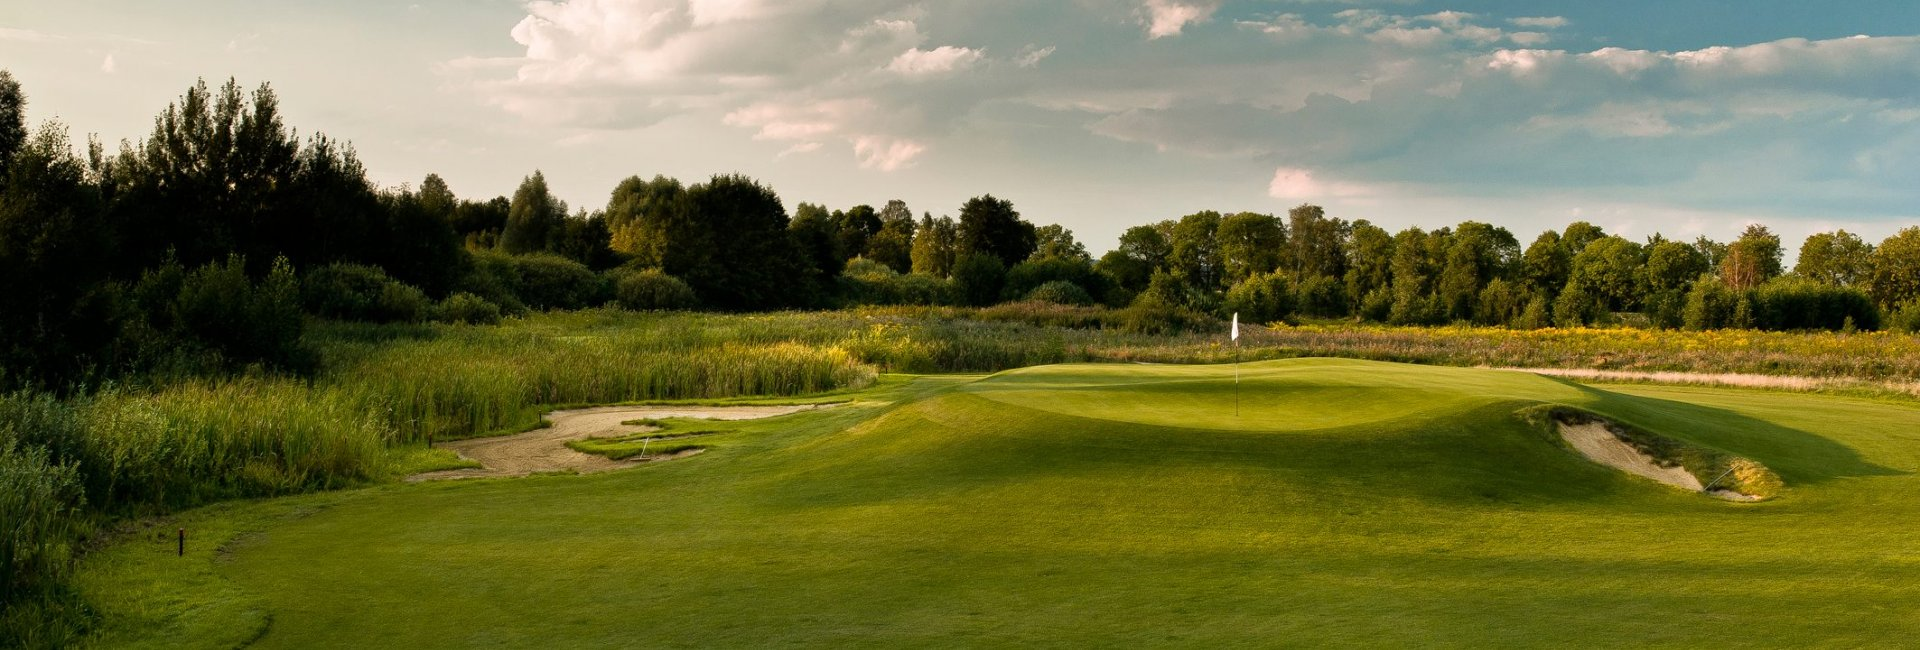 Golf – Sand Valley Golf & Country Club in Pasłęk (60 km from the hotel)